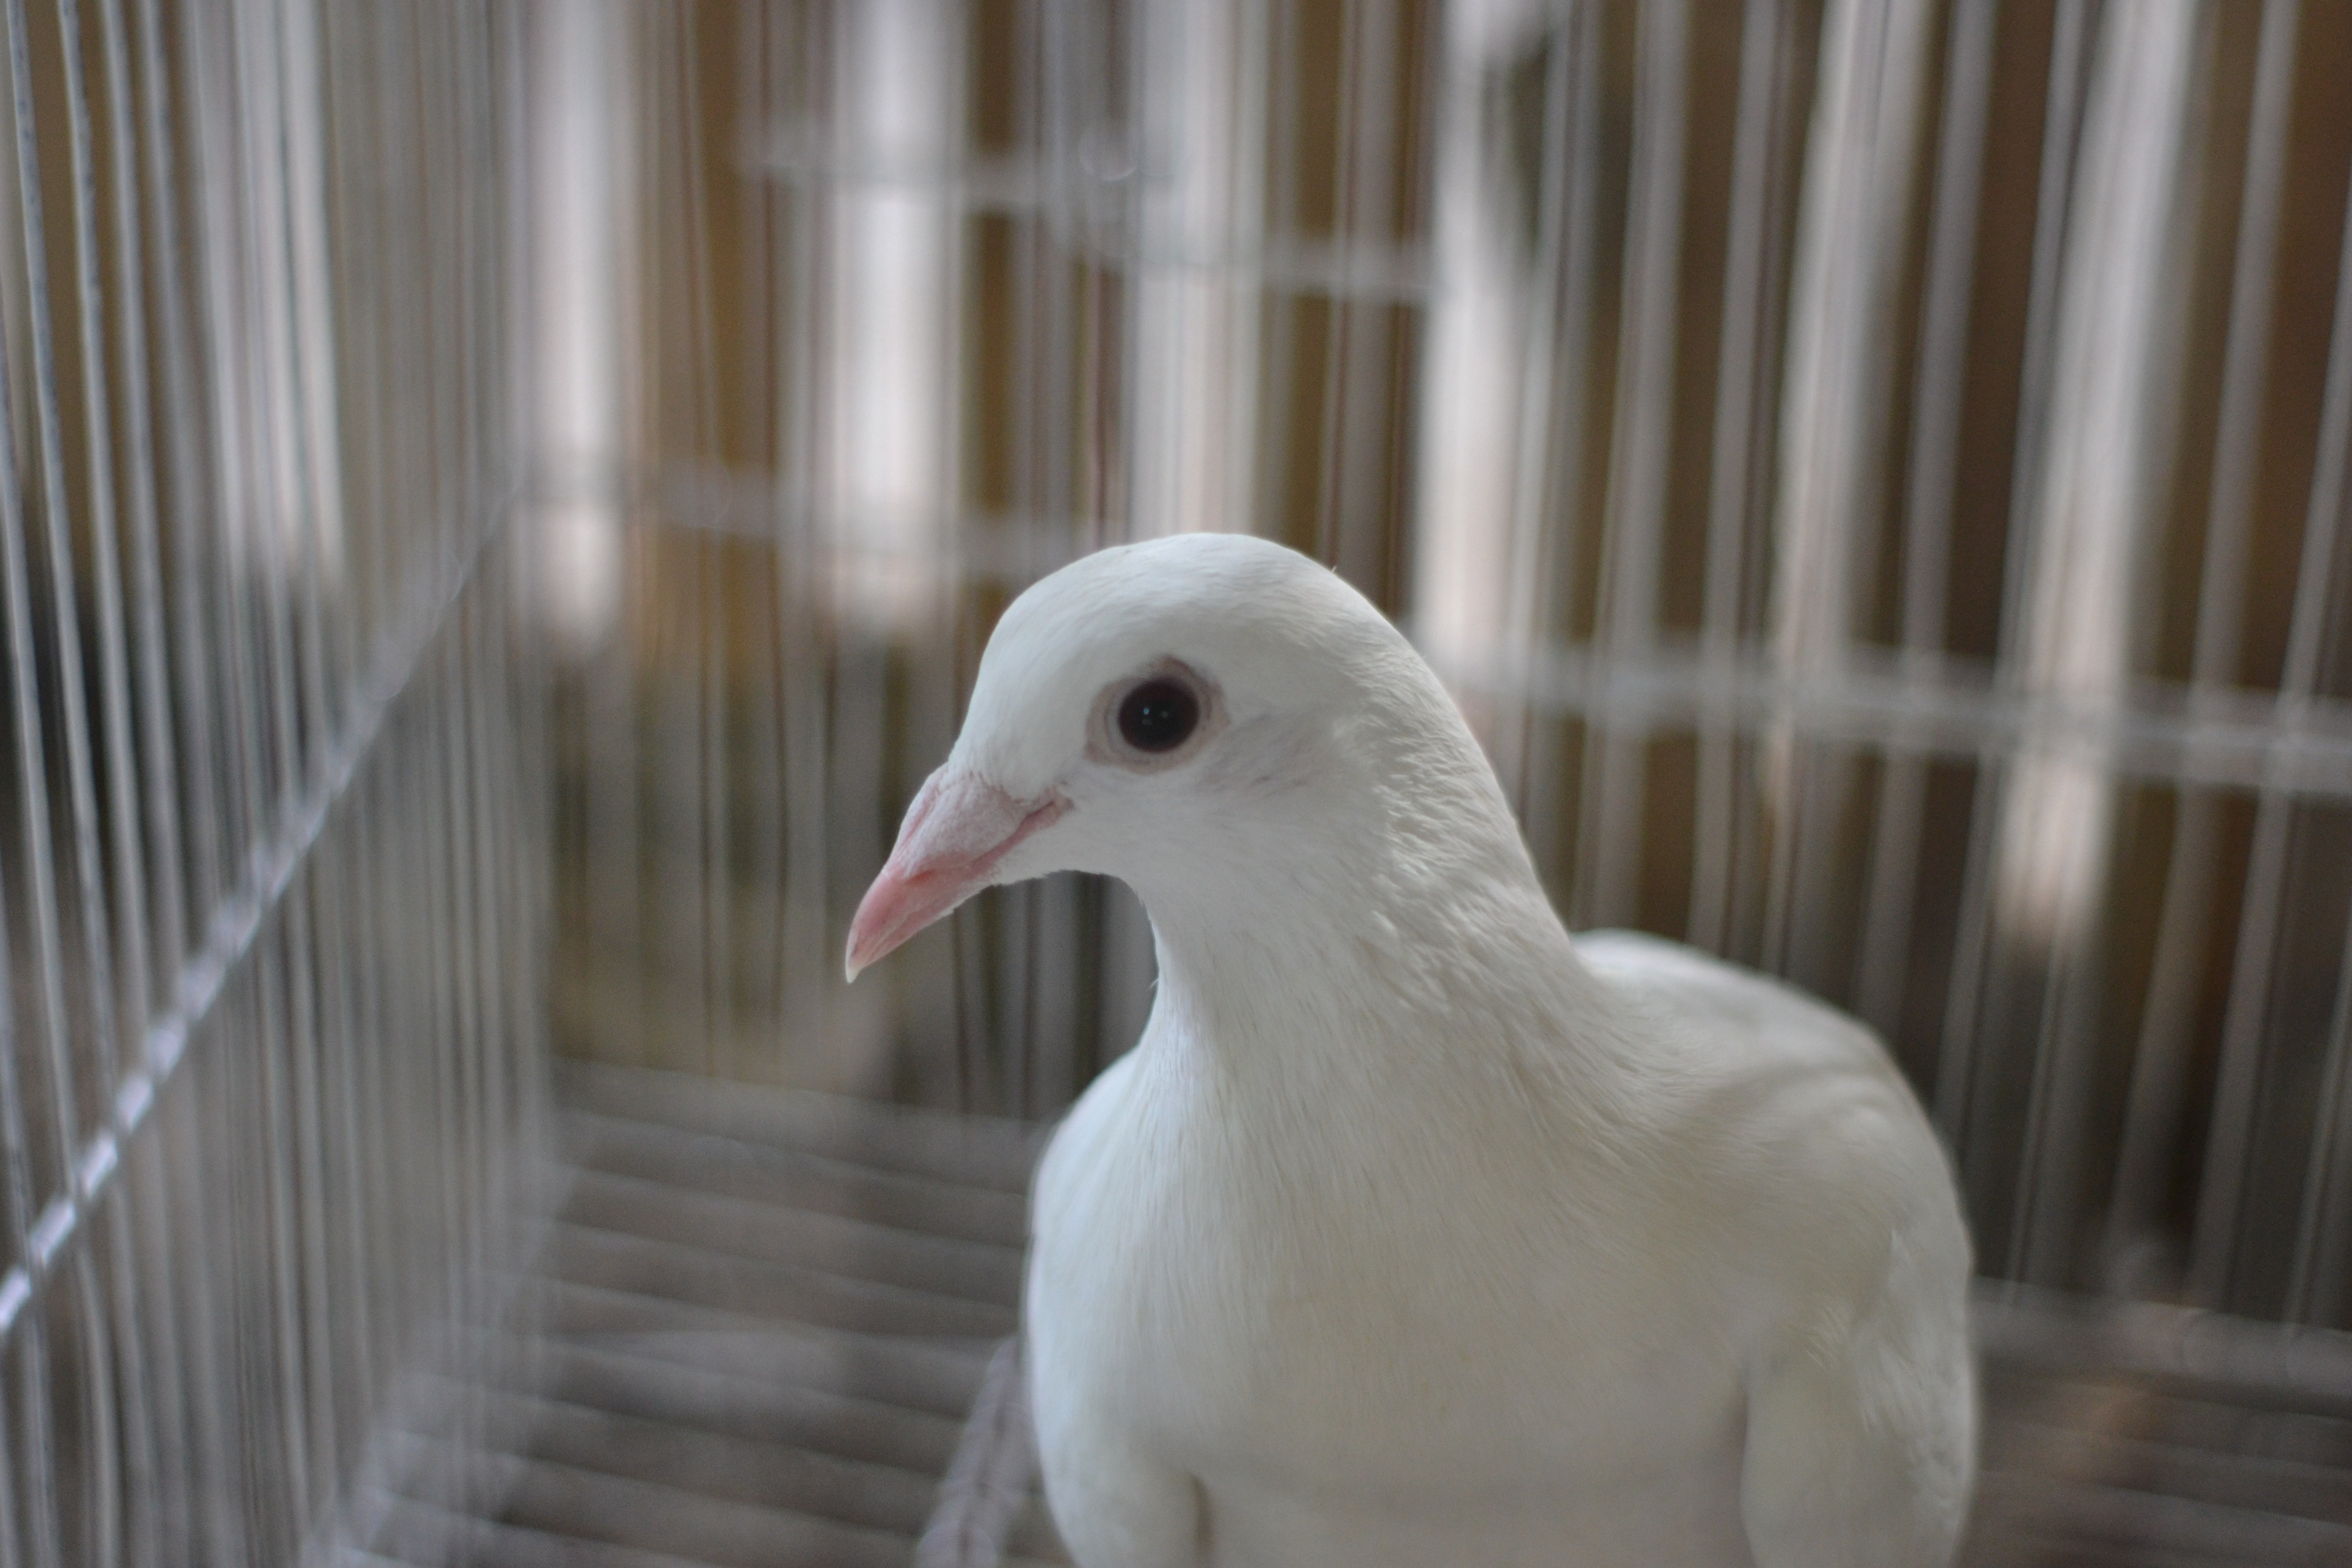 Portrait of White Pigeon, Animal, Pigeon, White, Side view, HQ Photo